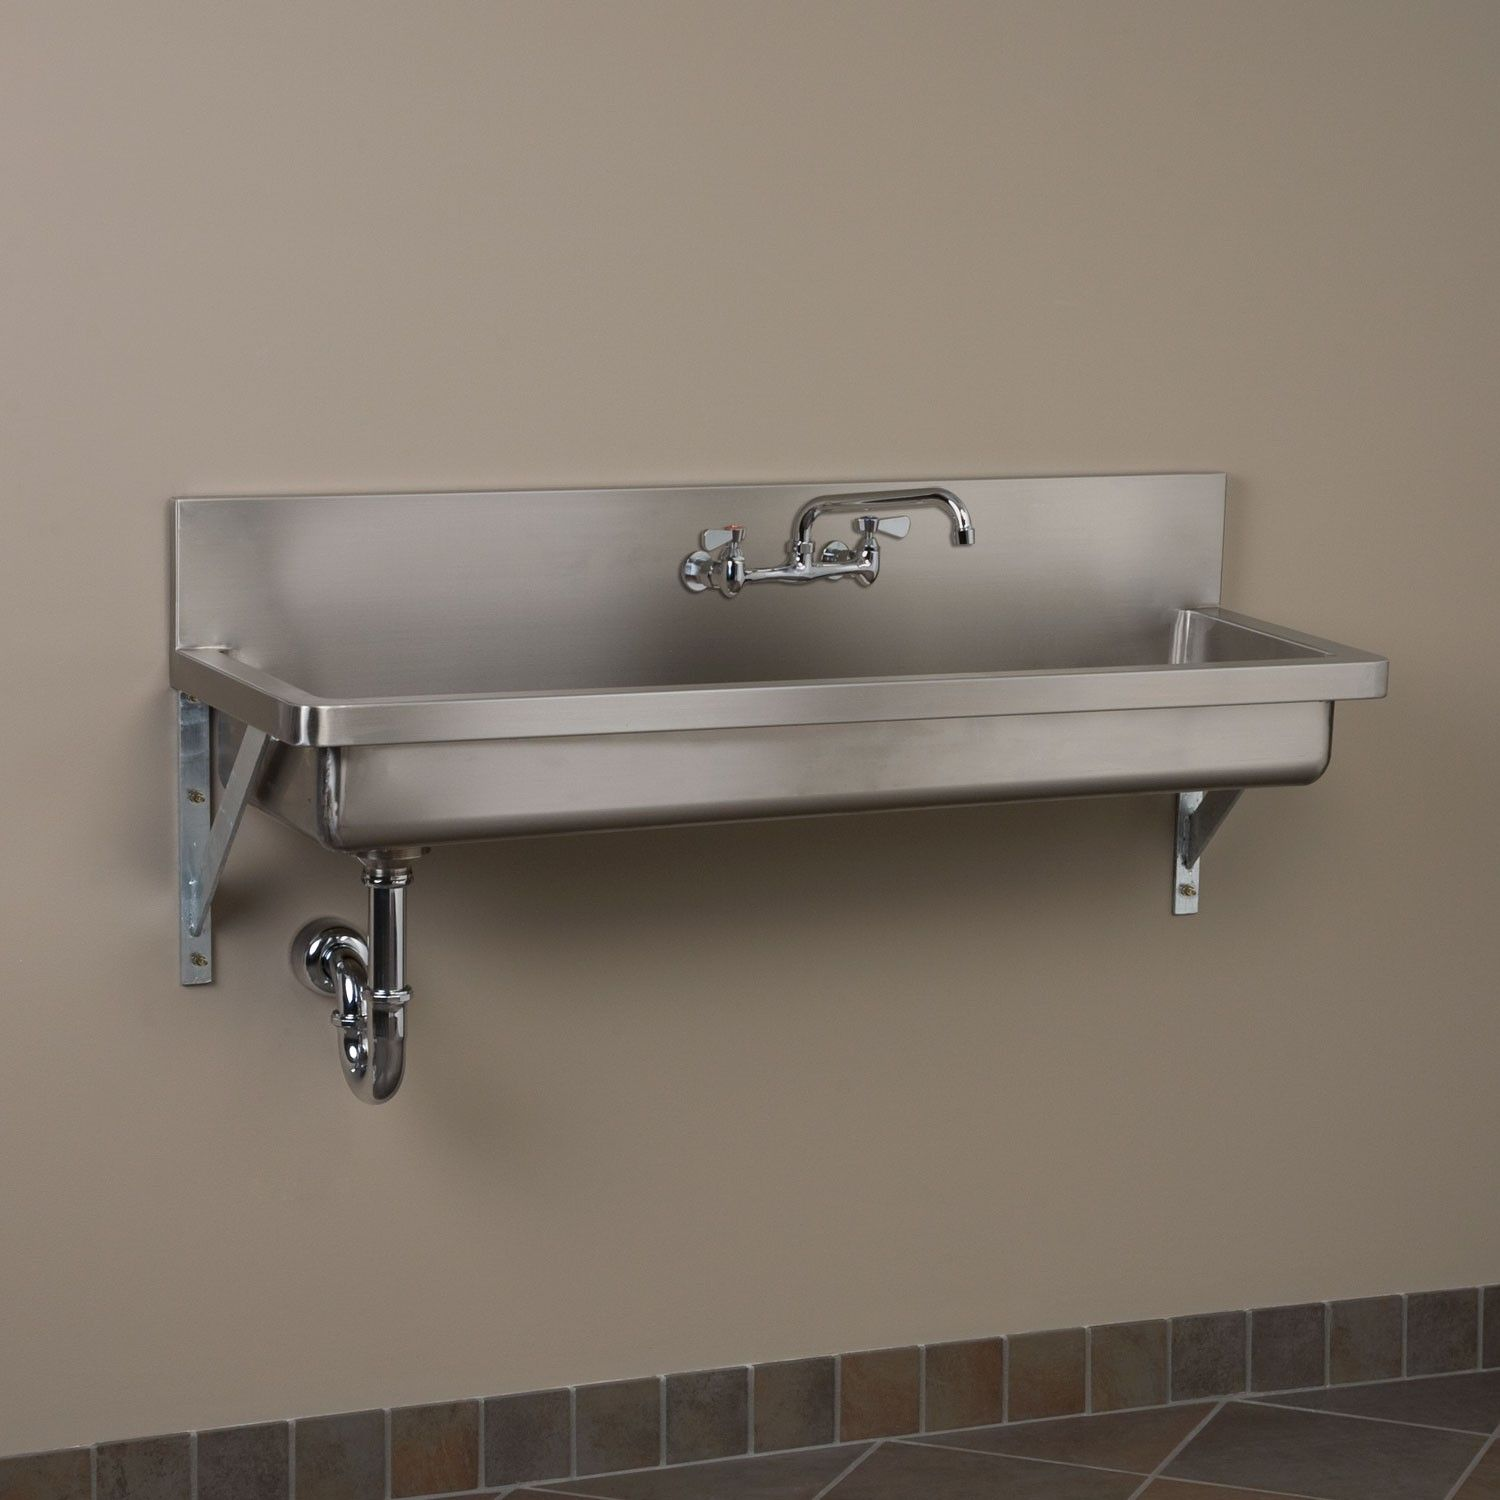 Stainless Steel Wall Mount Commercial Sink Garage Workshop